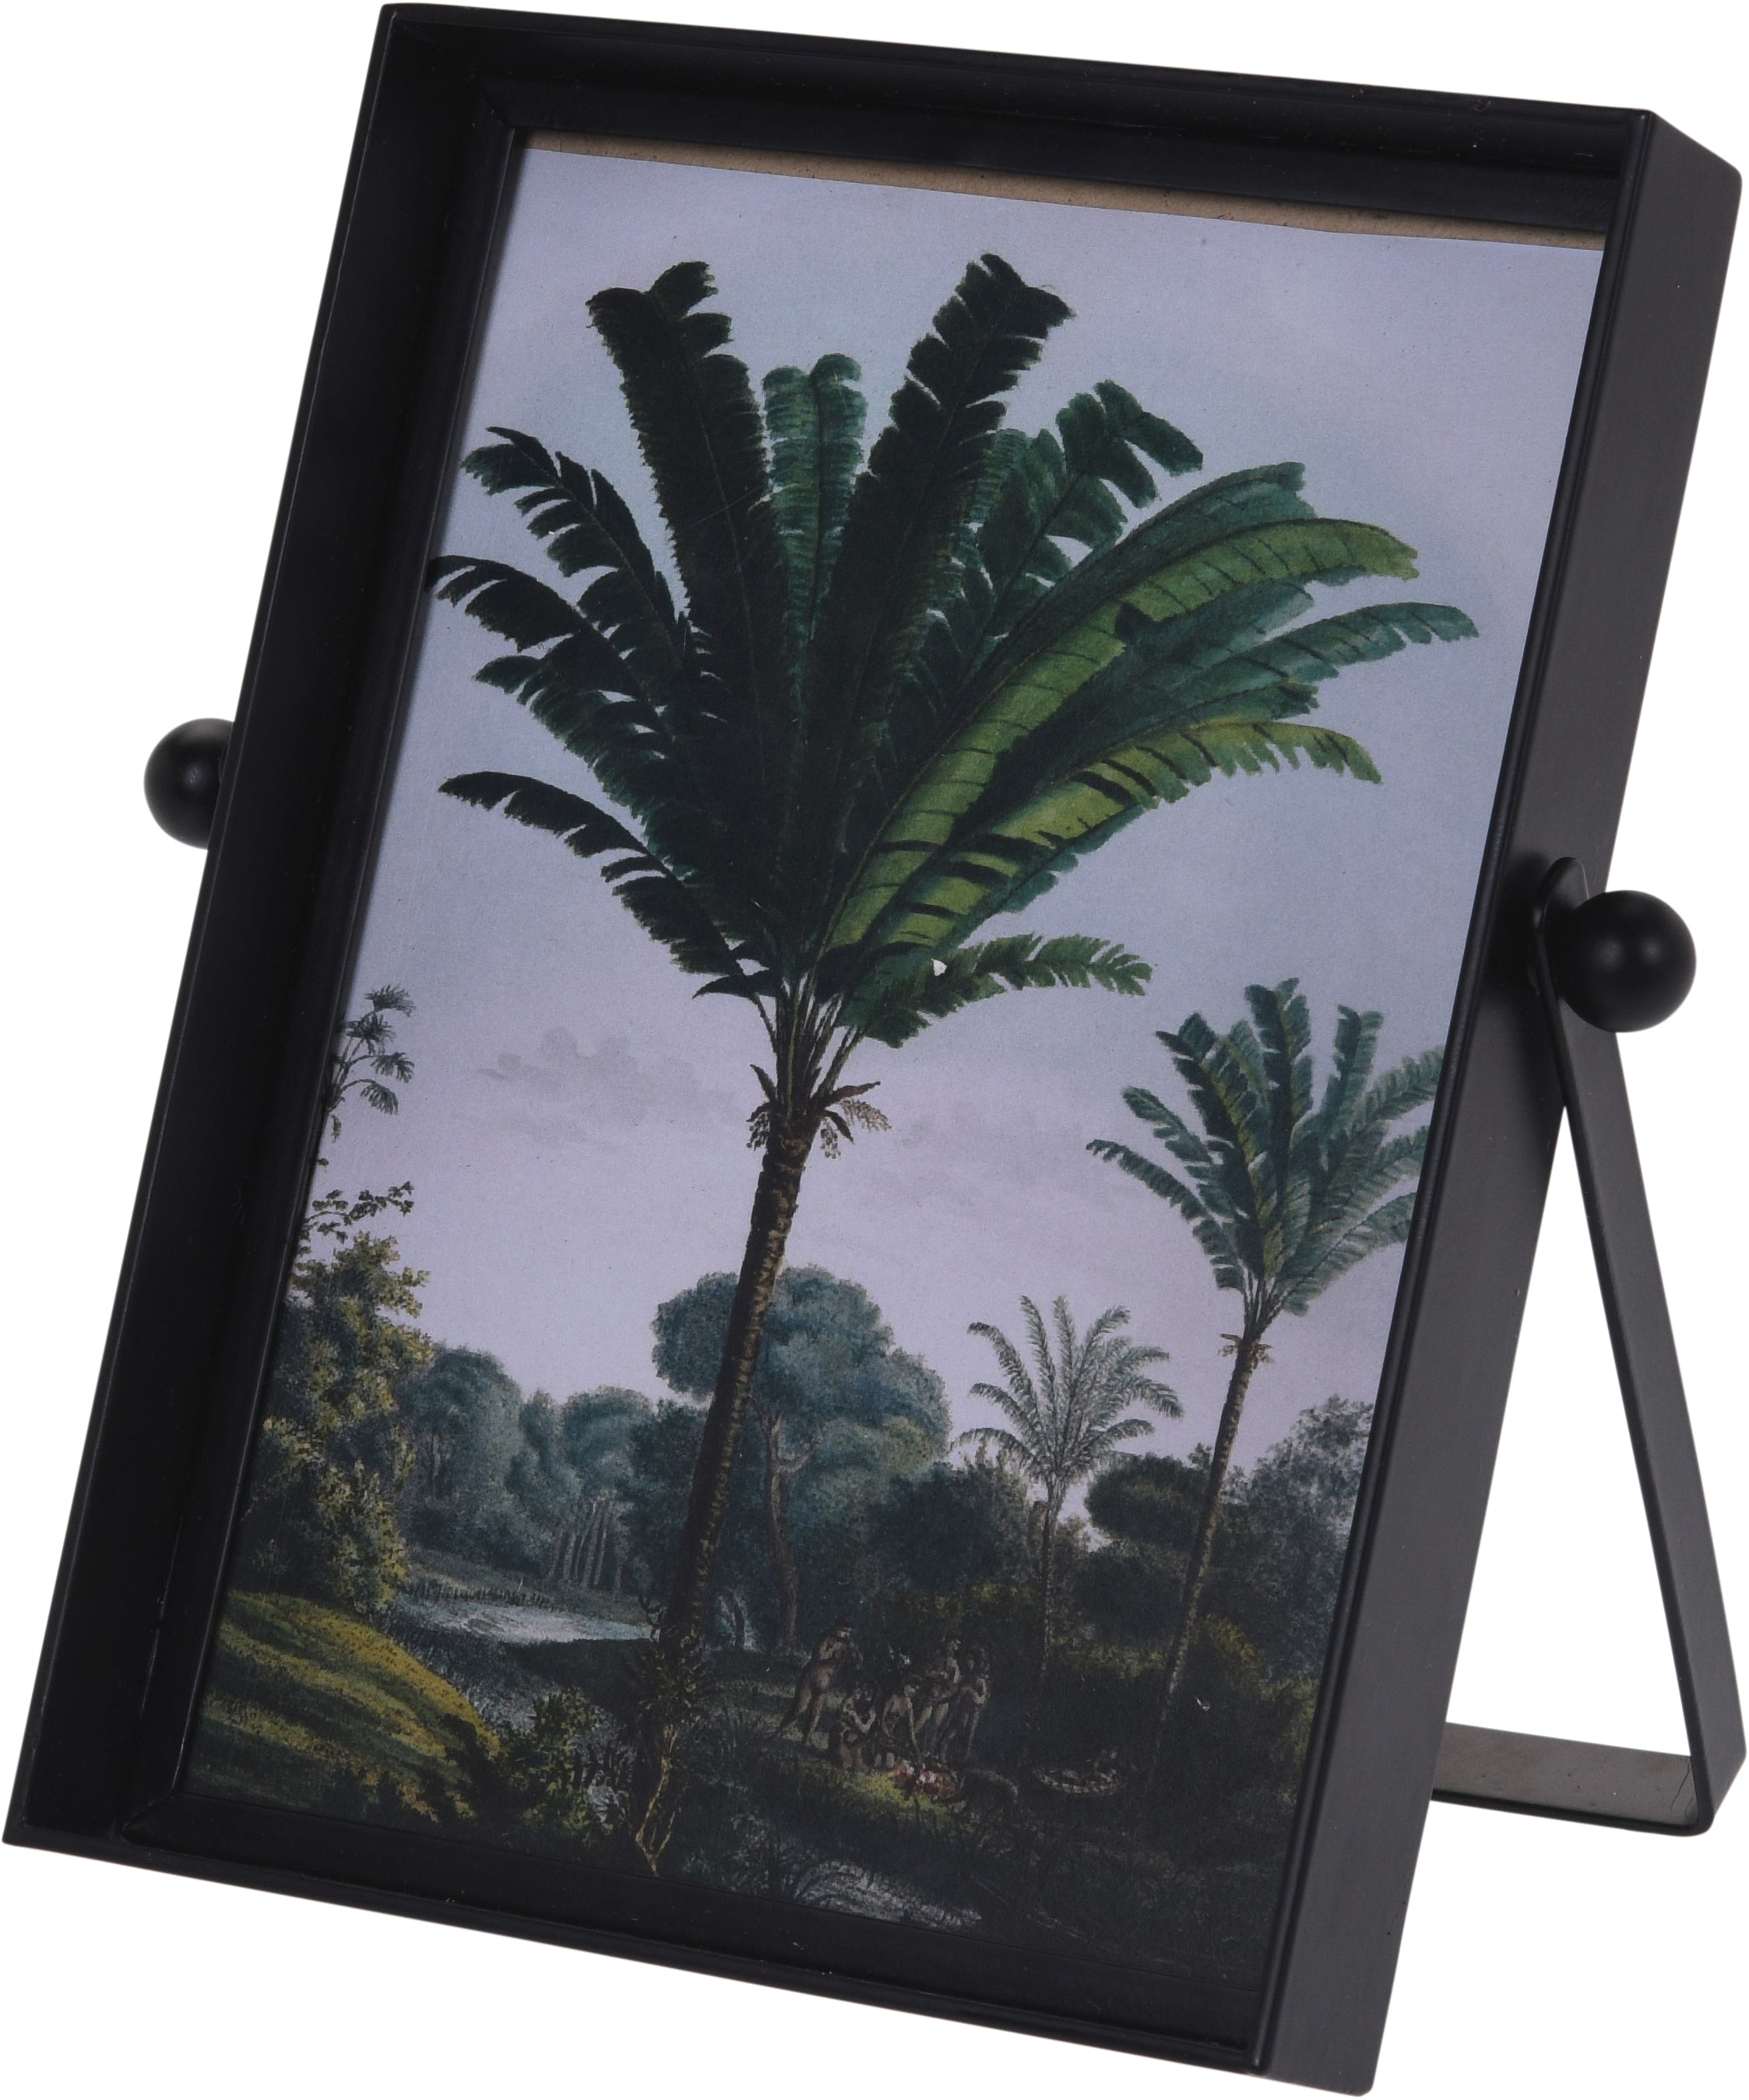 Black Metal Stand 6x4 Photo Frame